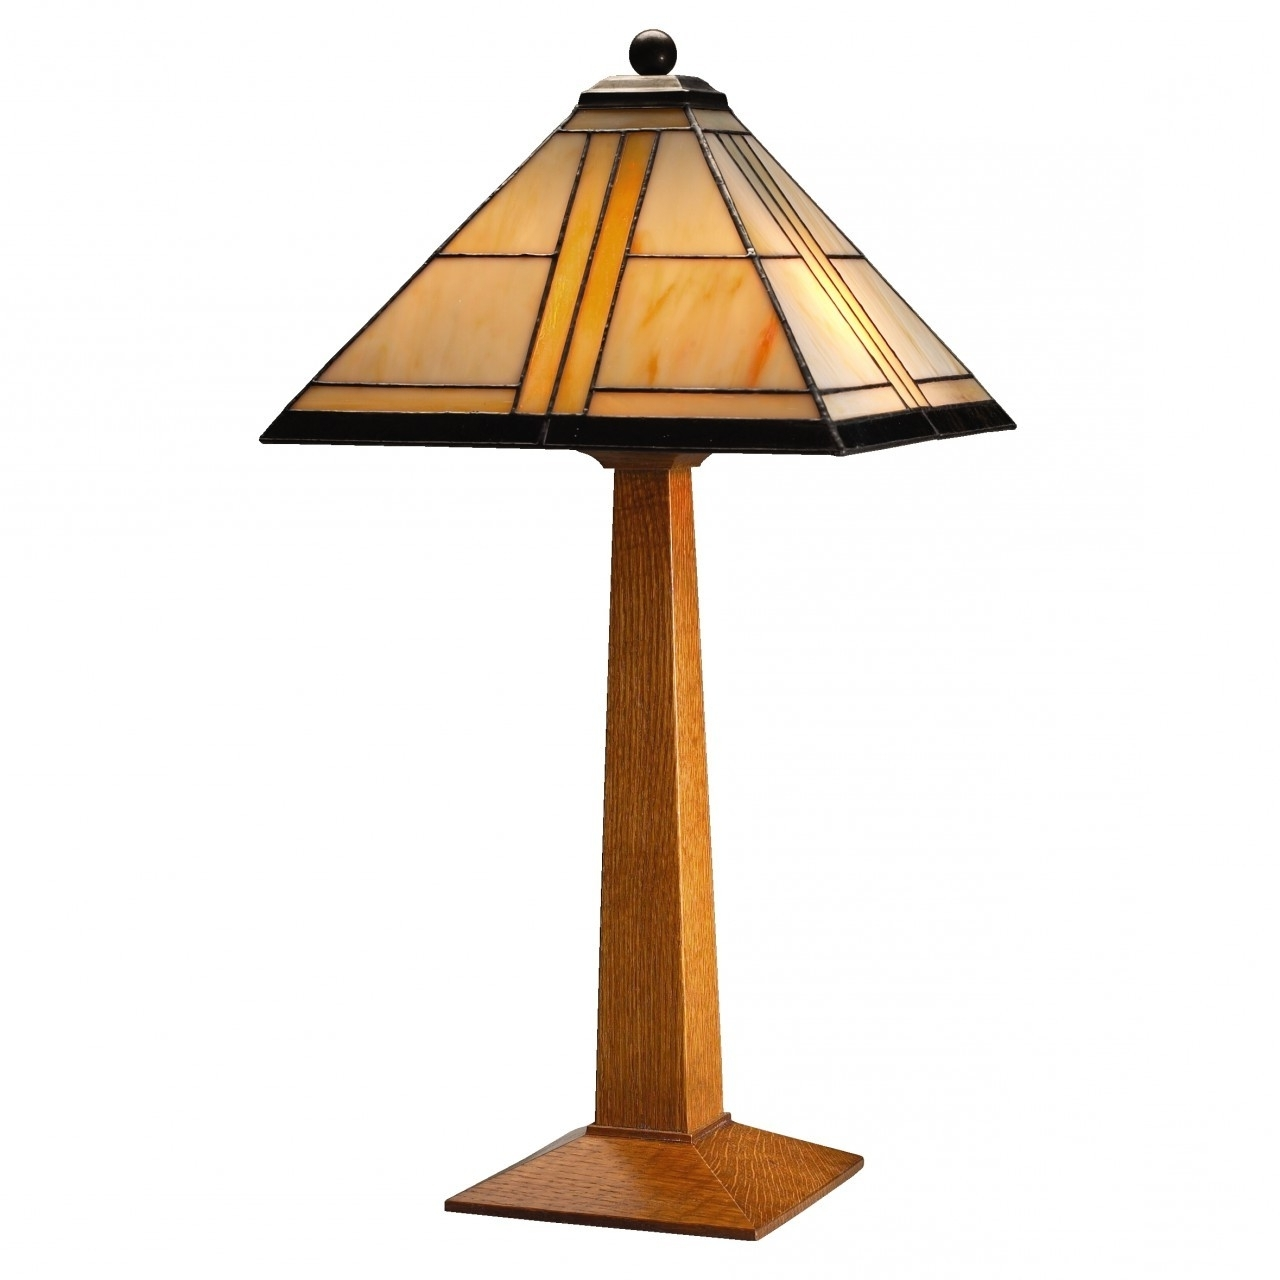 Trendy Wood Table Lamps For Living Room Within Interior: Fascinating Table Lamp Furniture For Living Room (View 17 of 20)